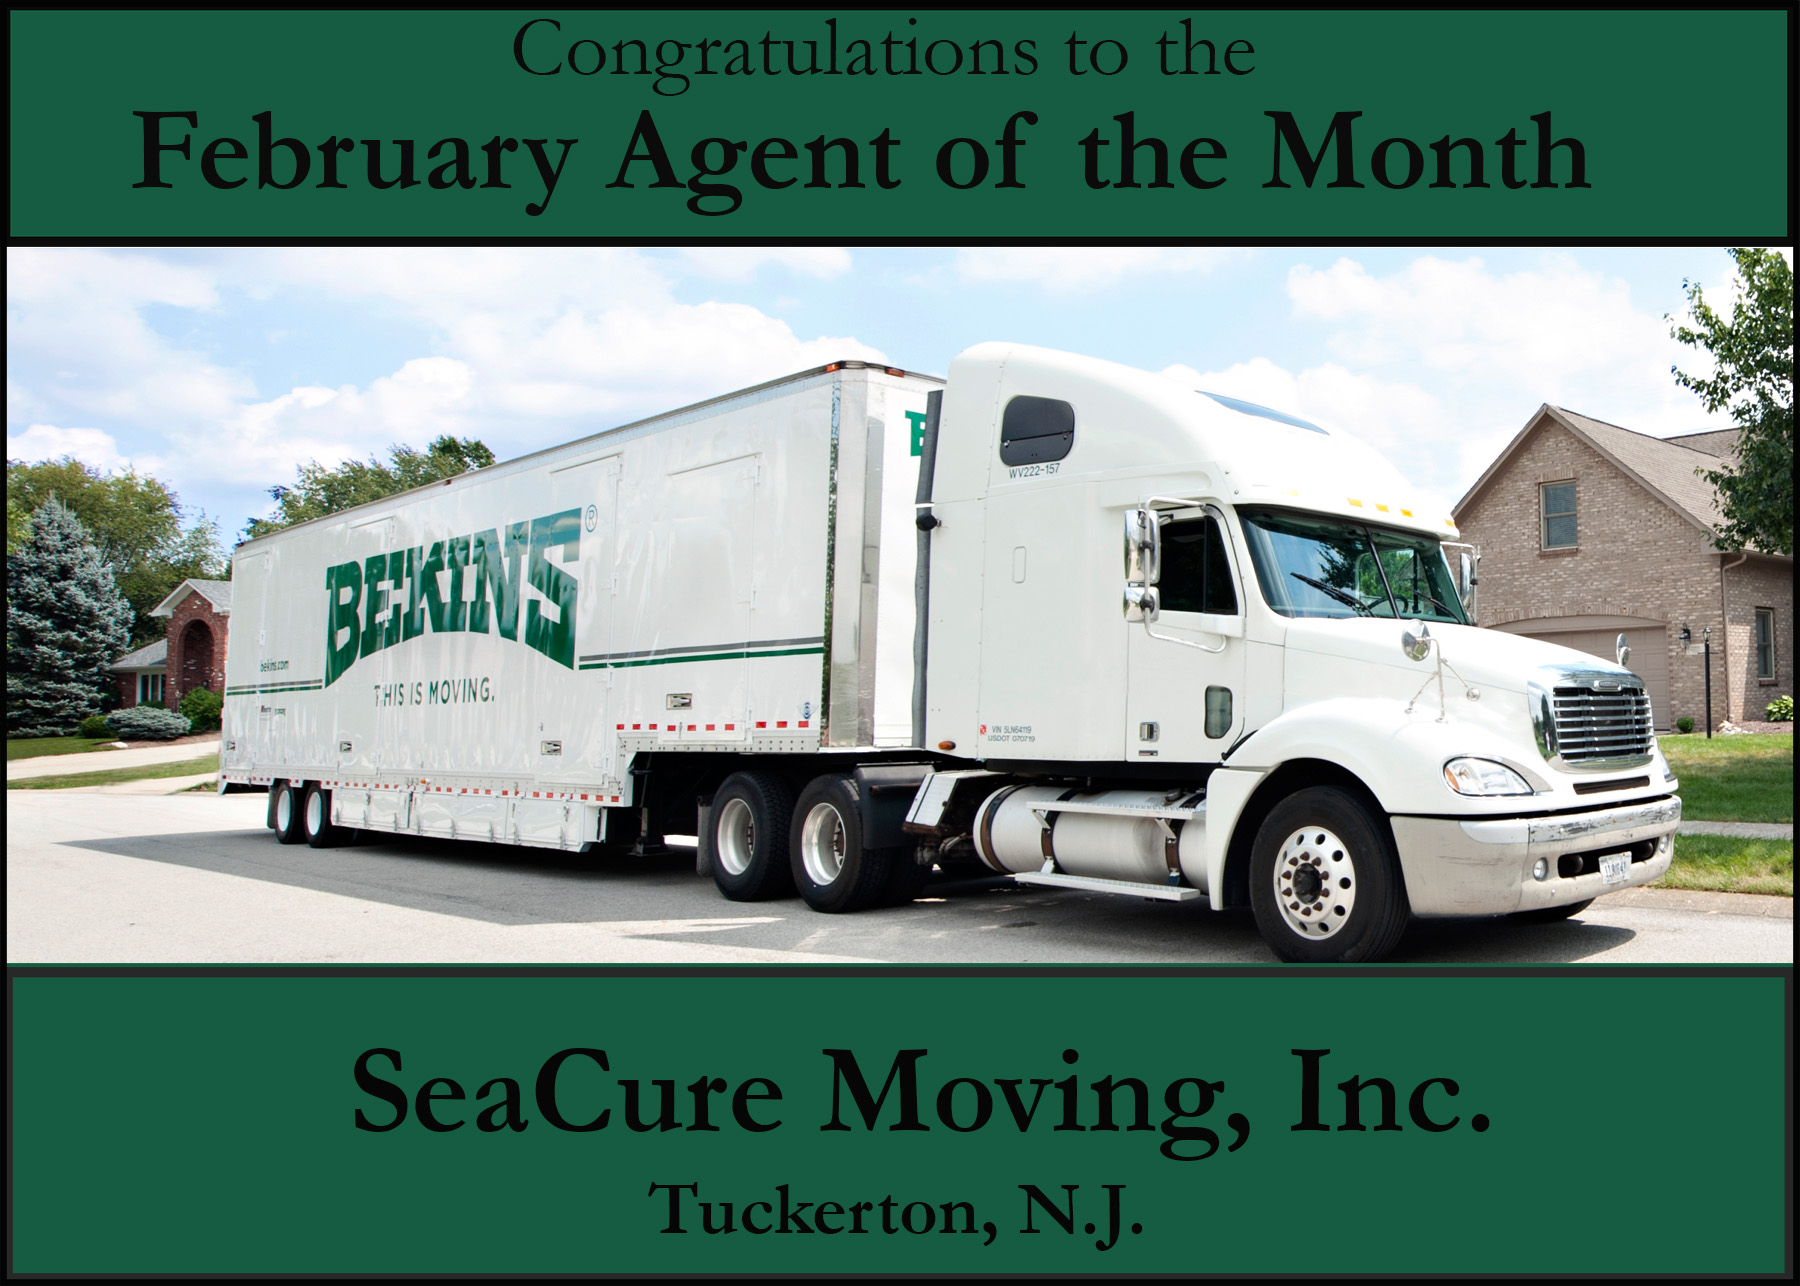 February 2016 - SeaCure Moving